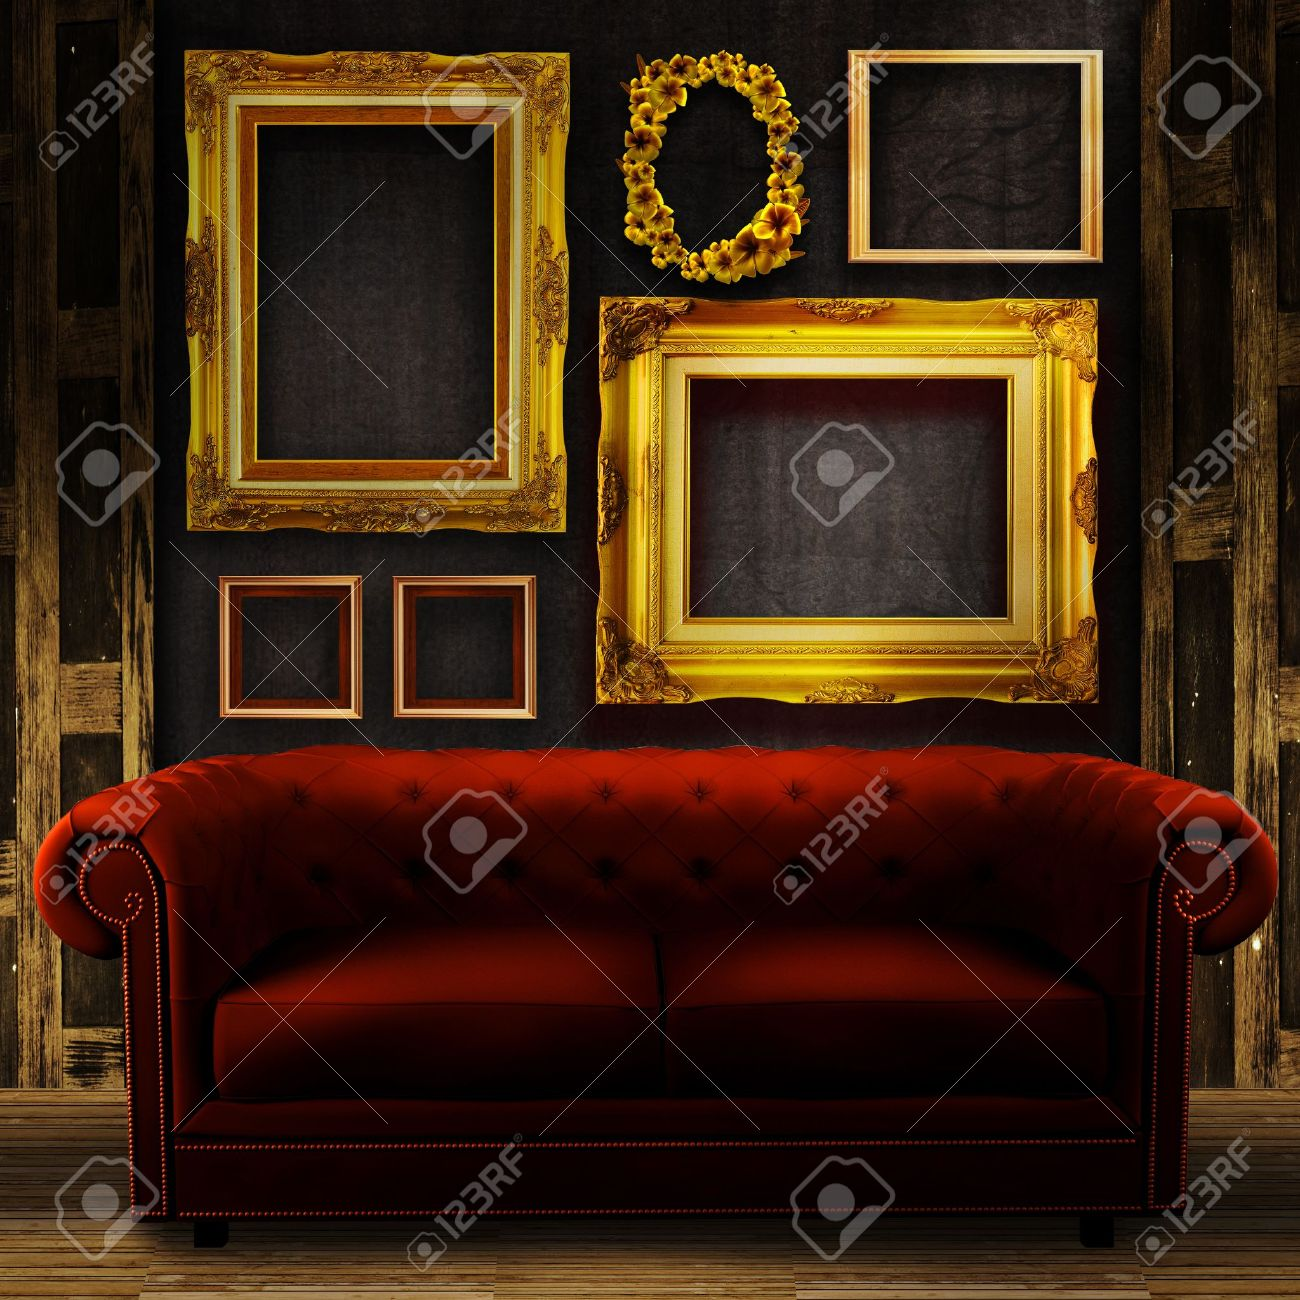 Gallery Display Vintage Gold Frames On An Old Timber Wall And